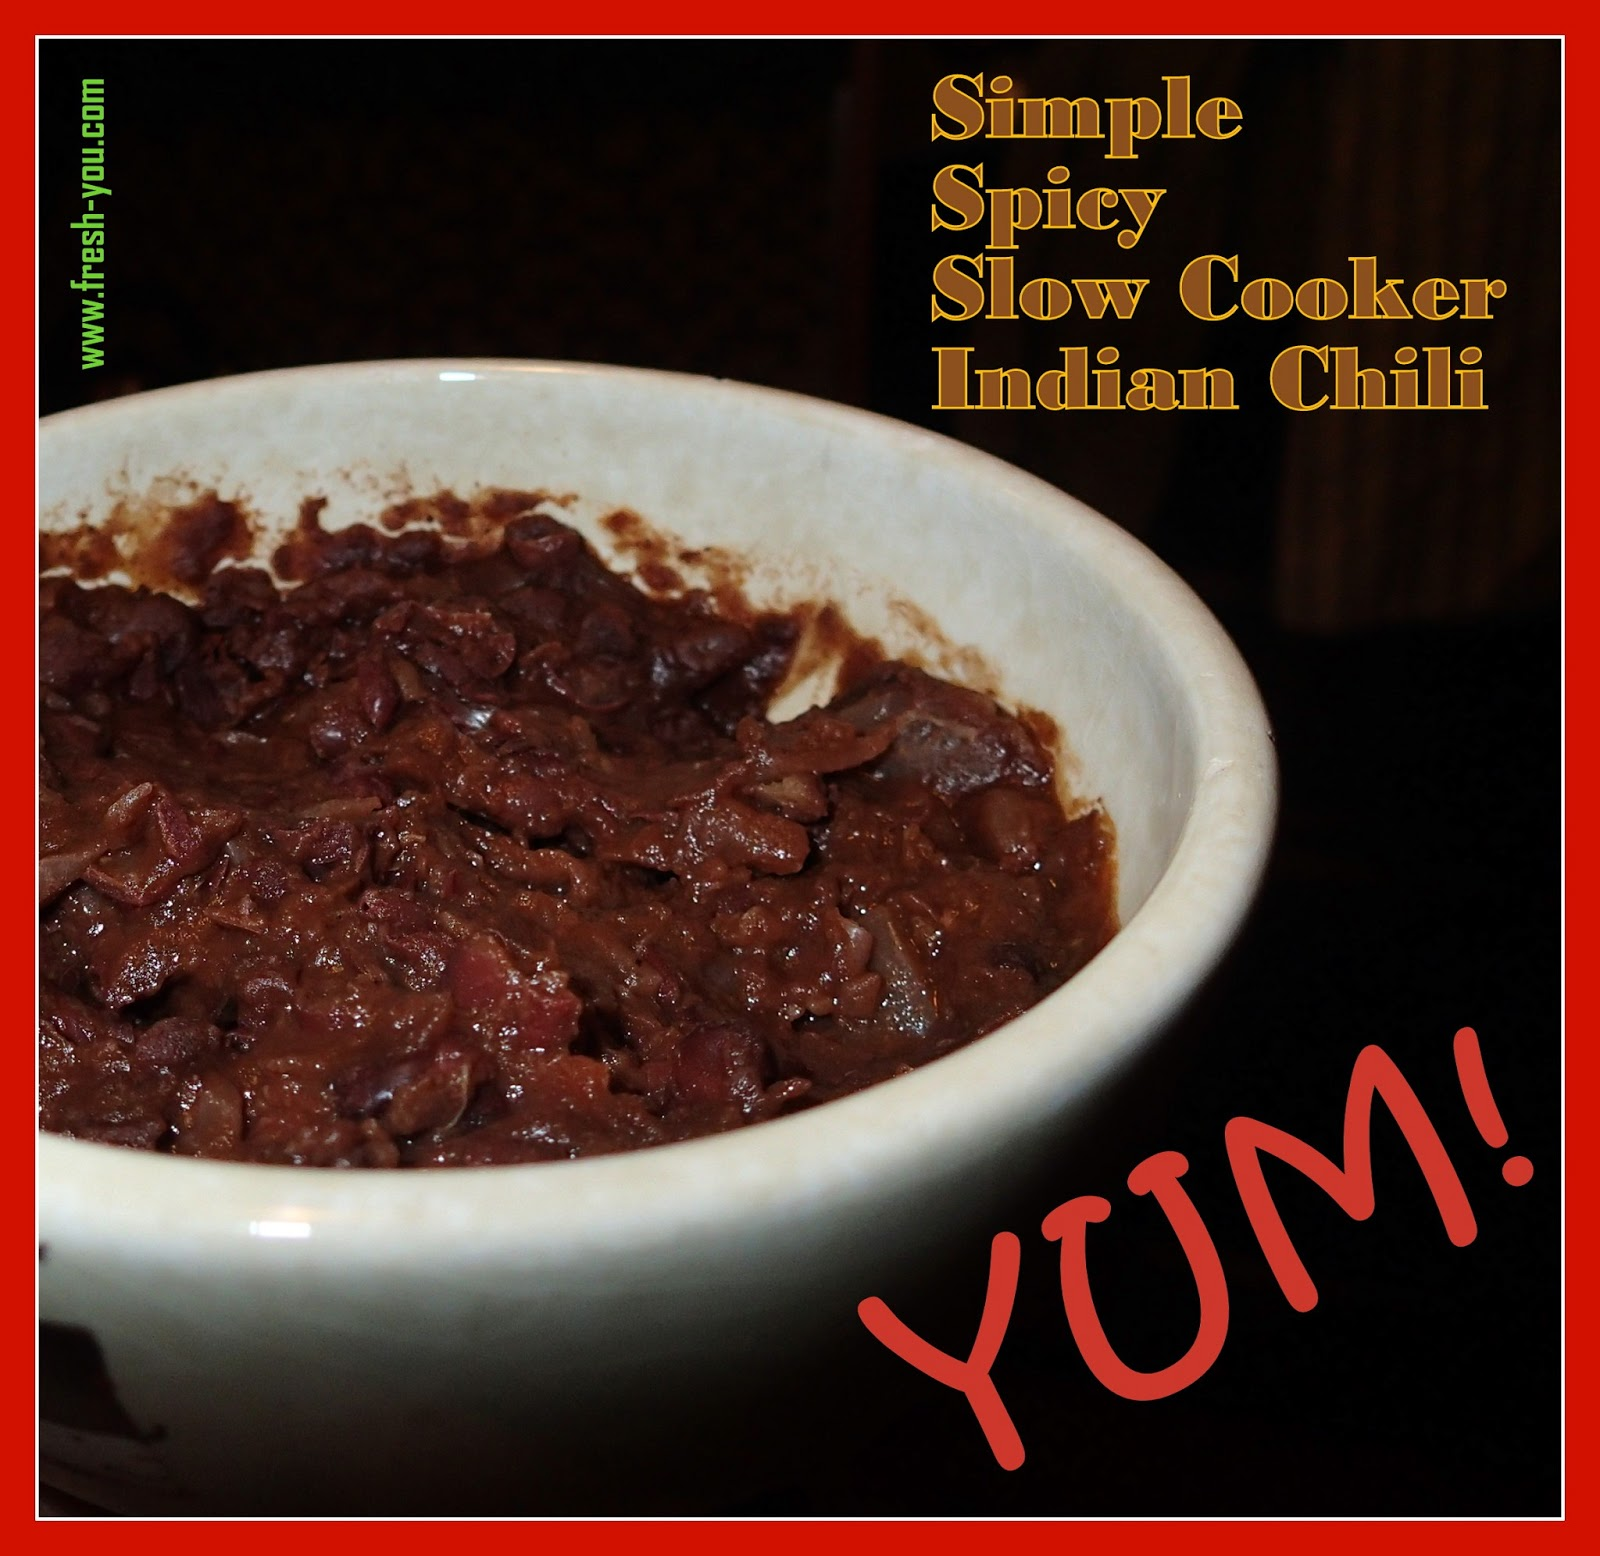 ... , Fitness, and Wellness: Simple Spicy Slow Cooker Indian Chili